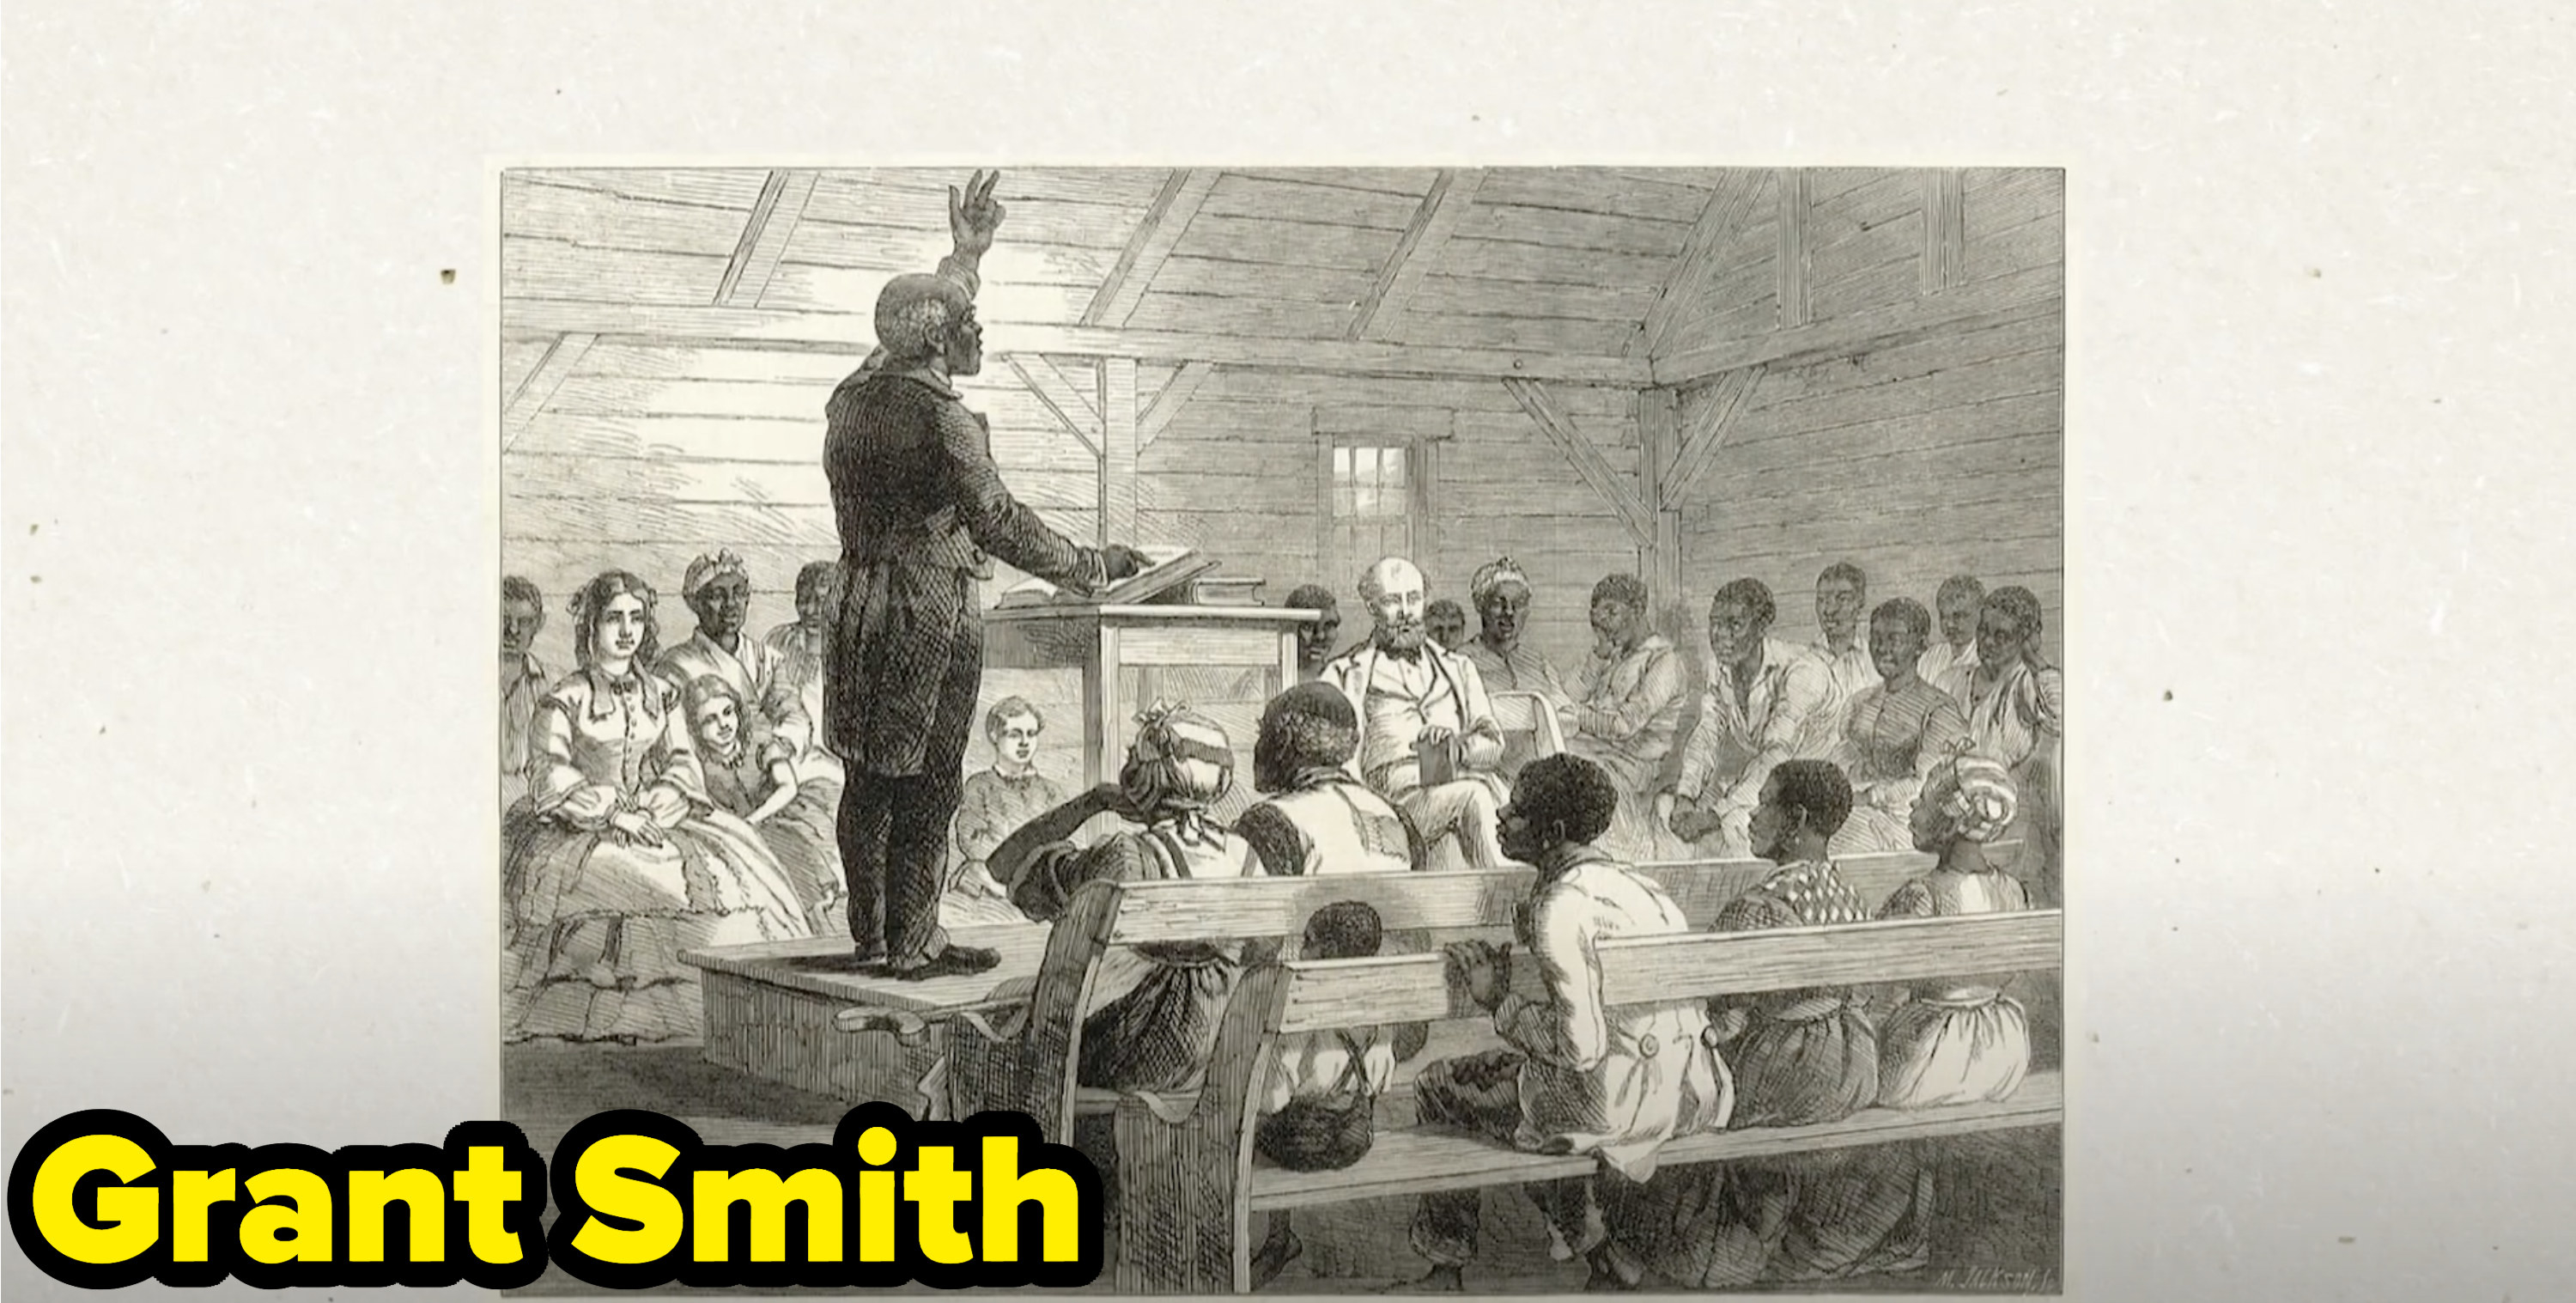 An illustration of of Grant Smith preaching